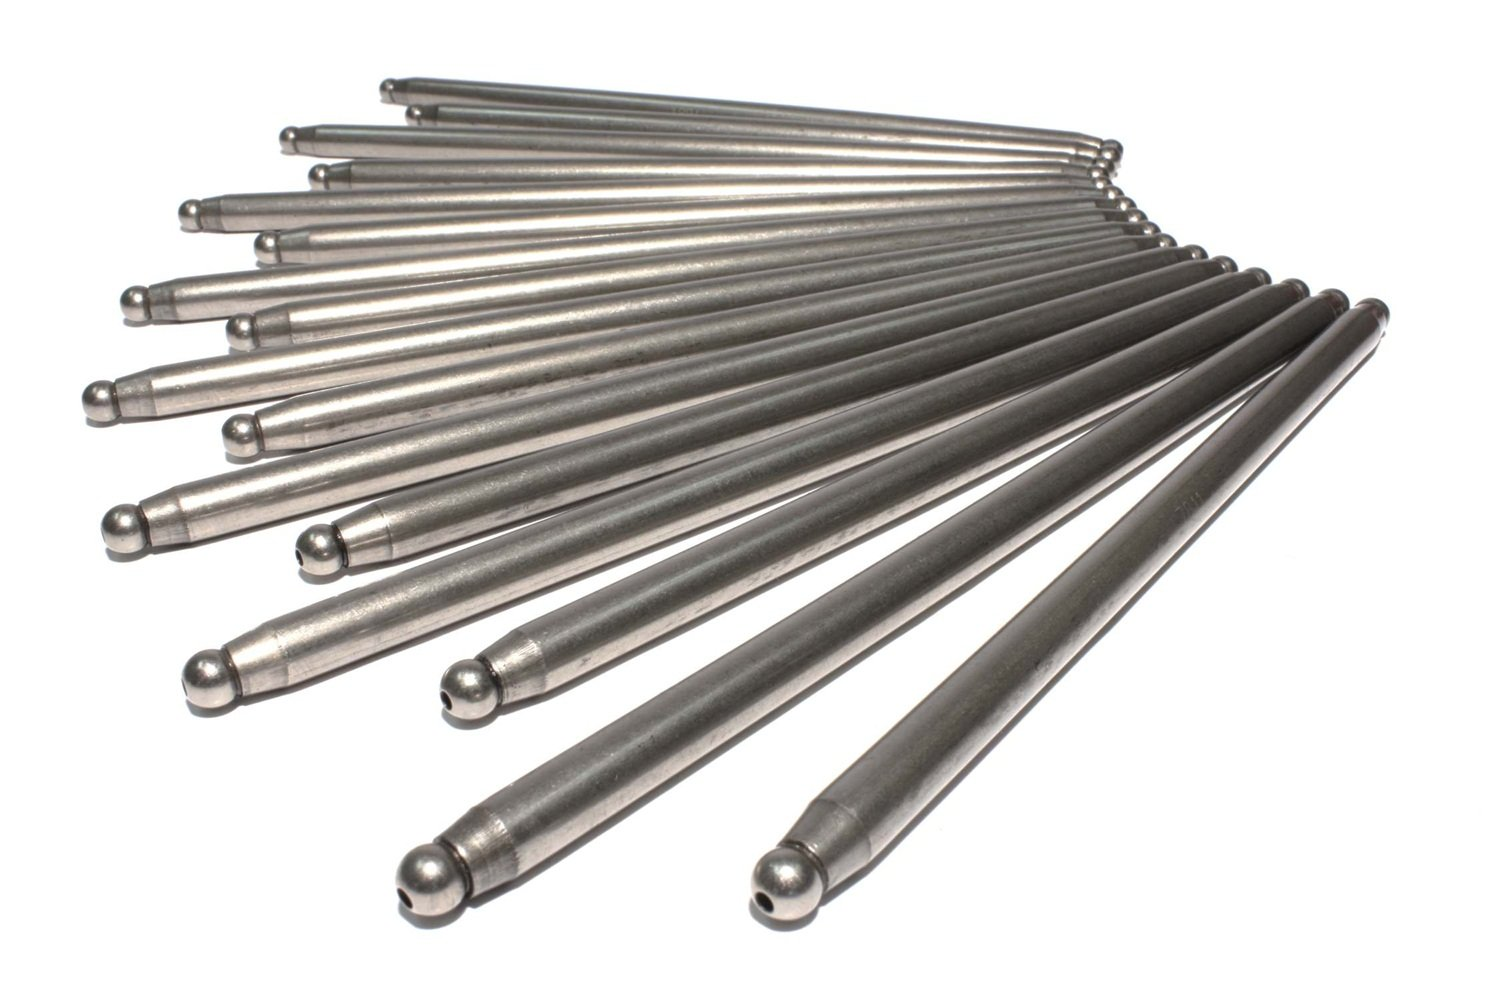 Competition Cams 7854-16 High Energy Pushrods for Big Block Chevy 396-454, 65-'86, 3/8' Diameter, 8.280' Intake Length, 9.252' Exhaust Length 65-' 86 3/8 Diameter 8.280 Intake Length 9.252 Exhaust Length nobrandname